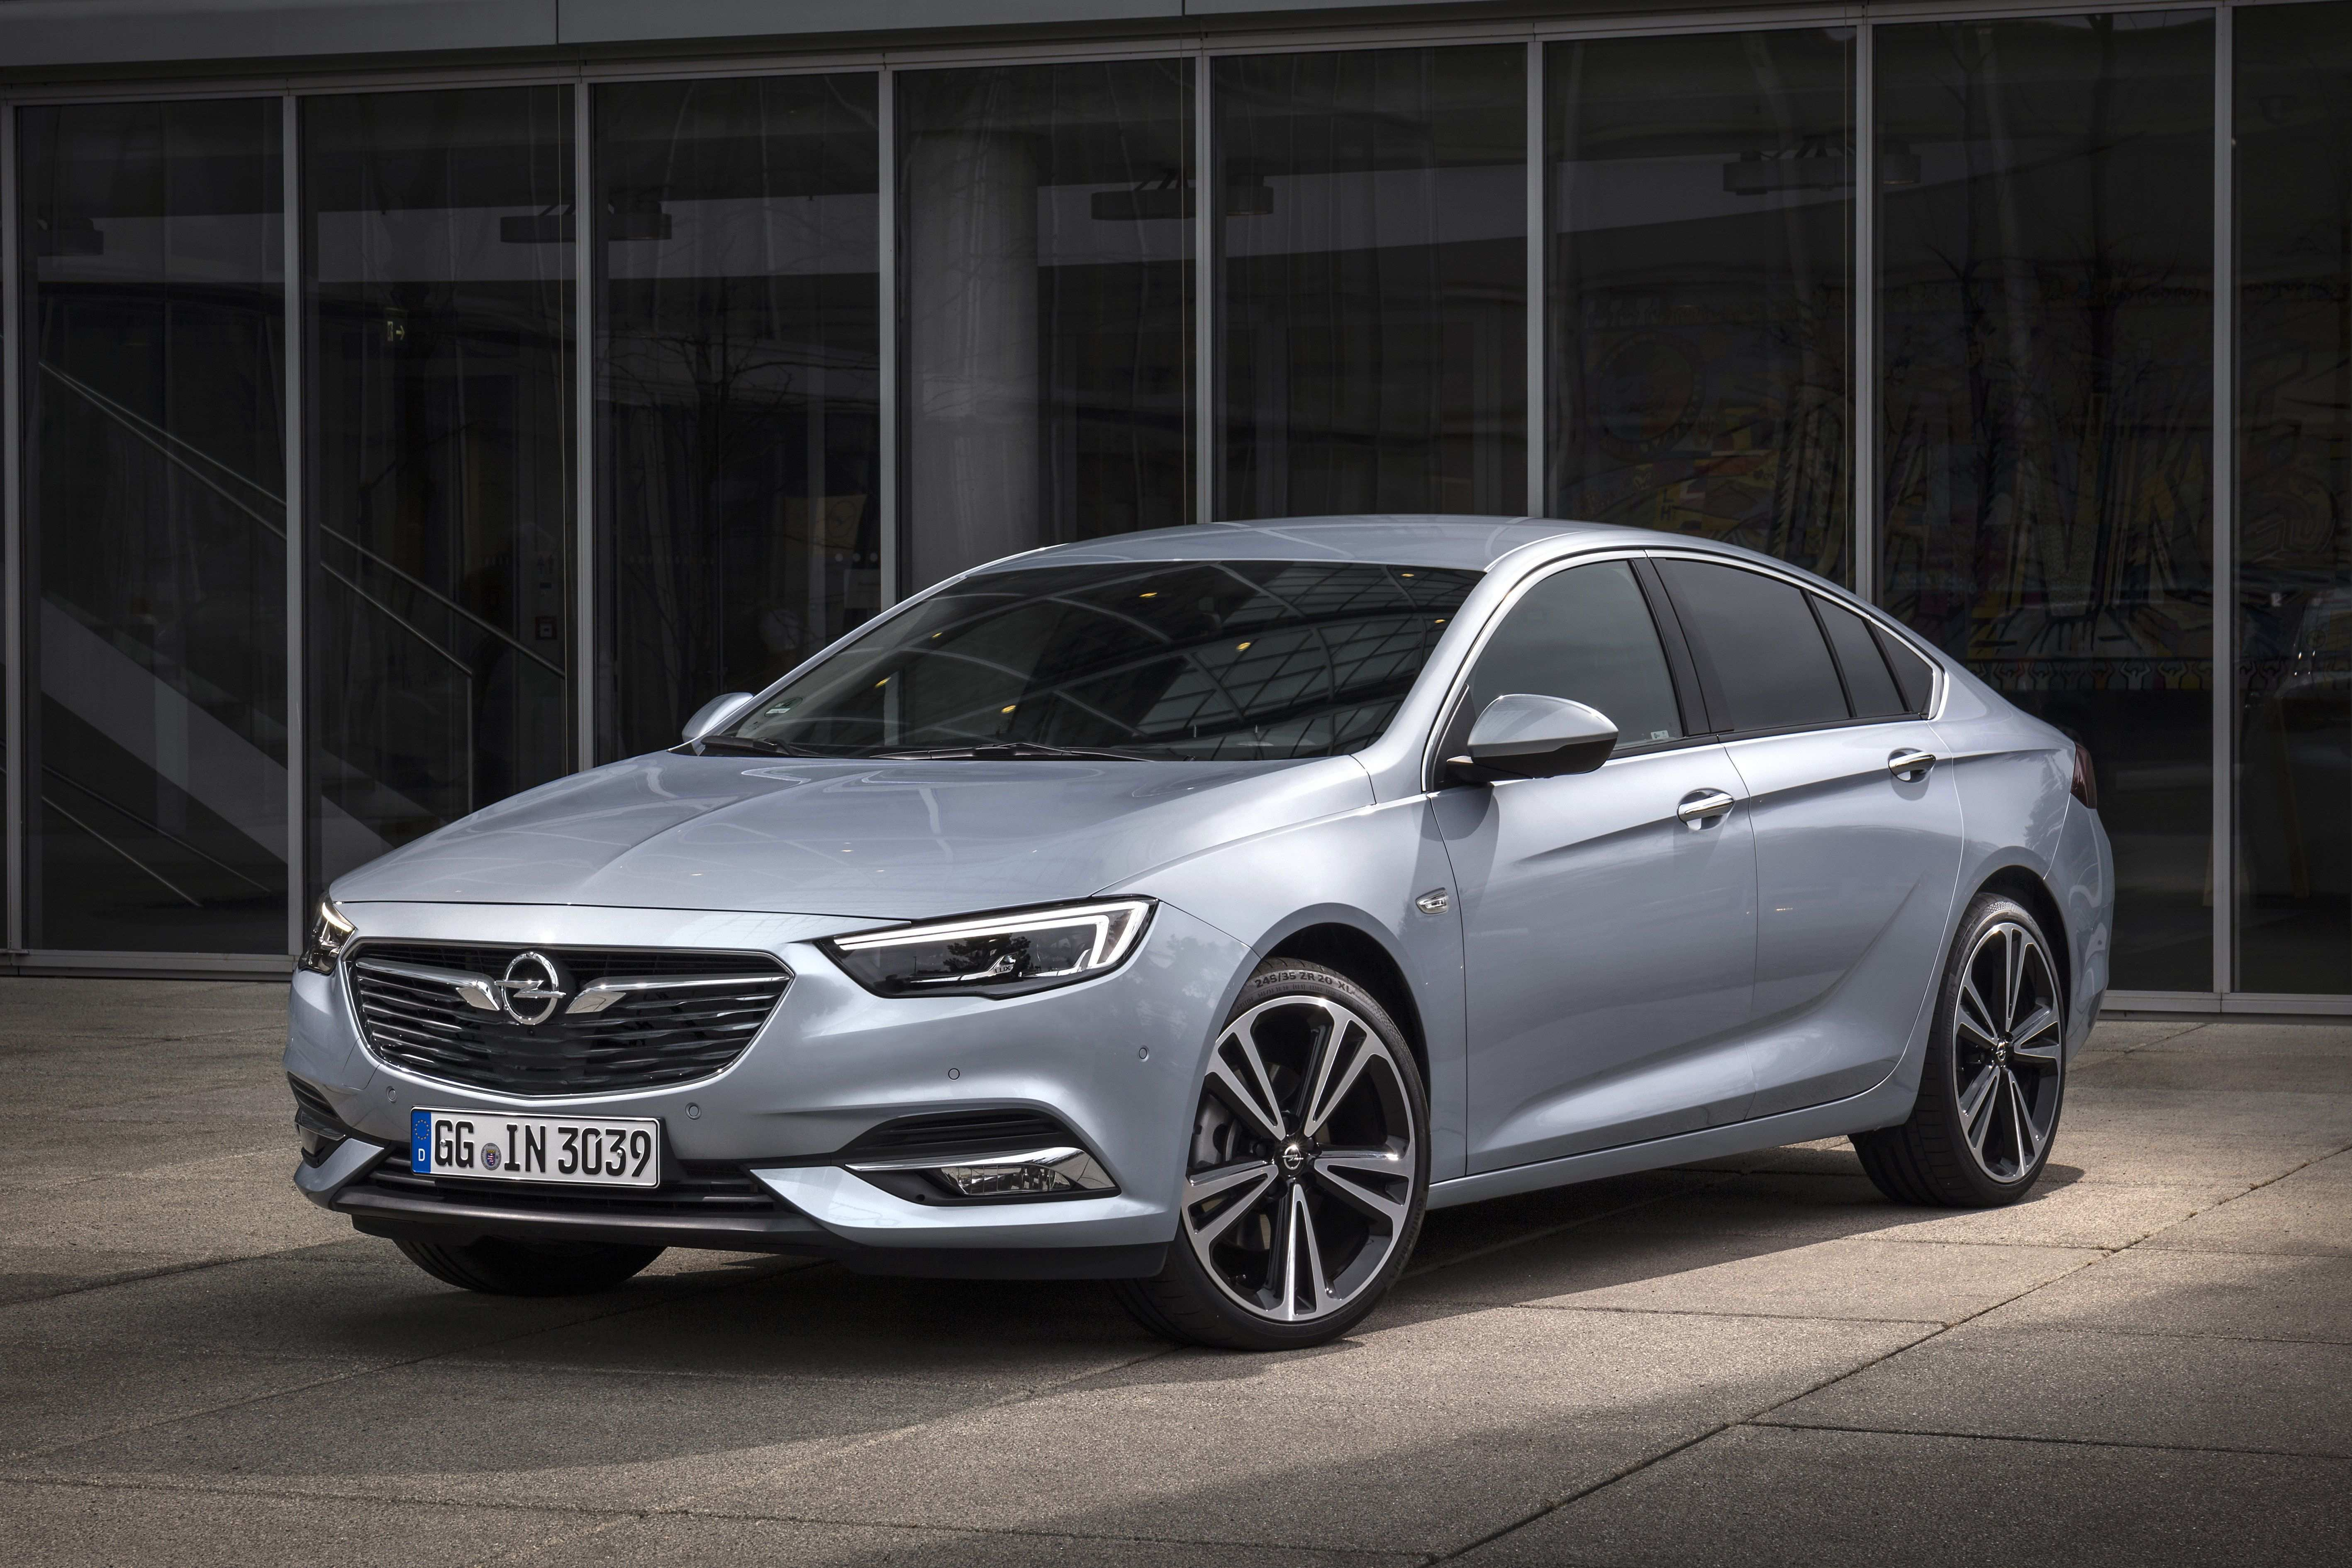 87 Gallery of 2020 New Opel Insignia 2018 Specs for 2020 New Opel Insignia 2018